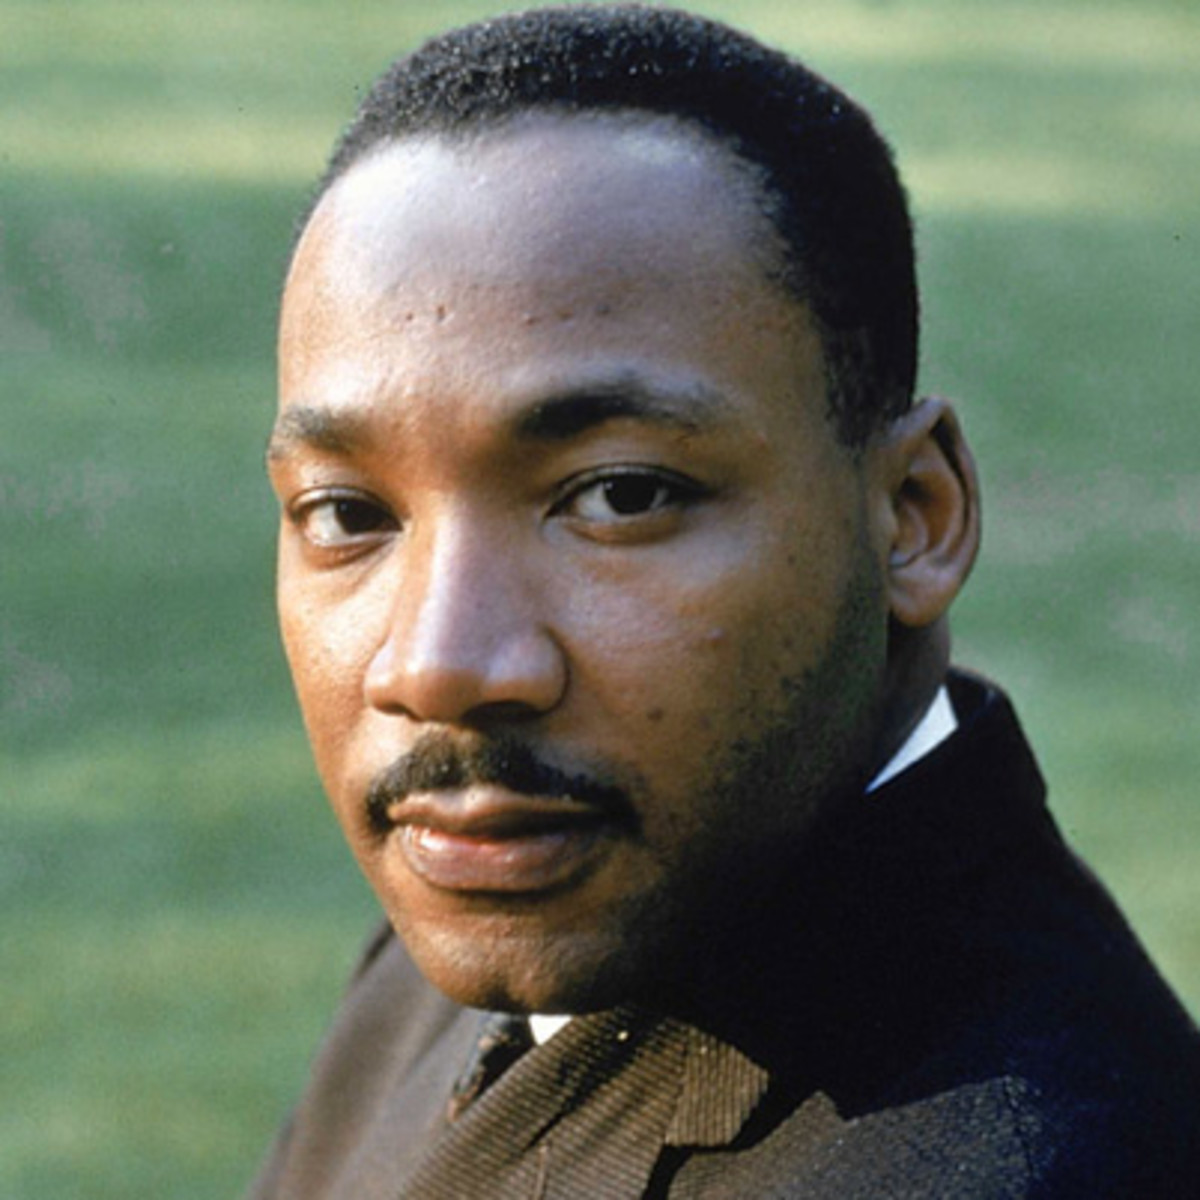 background scene - martin-luther-king-jr-9365086-2-402